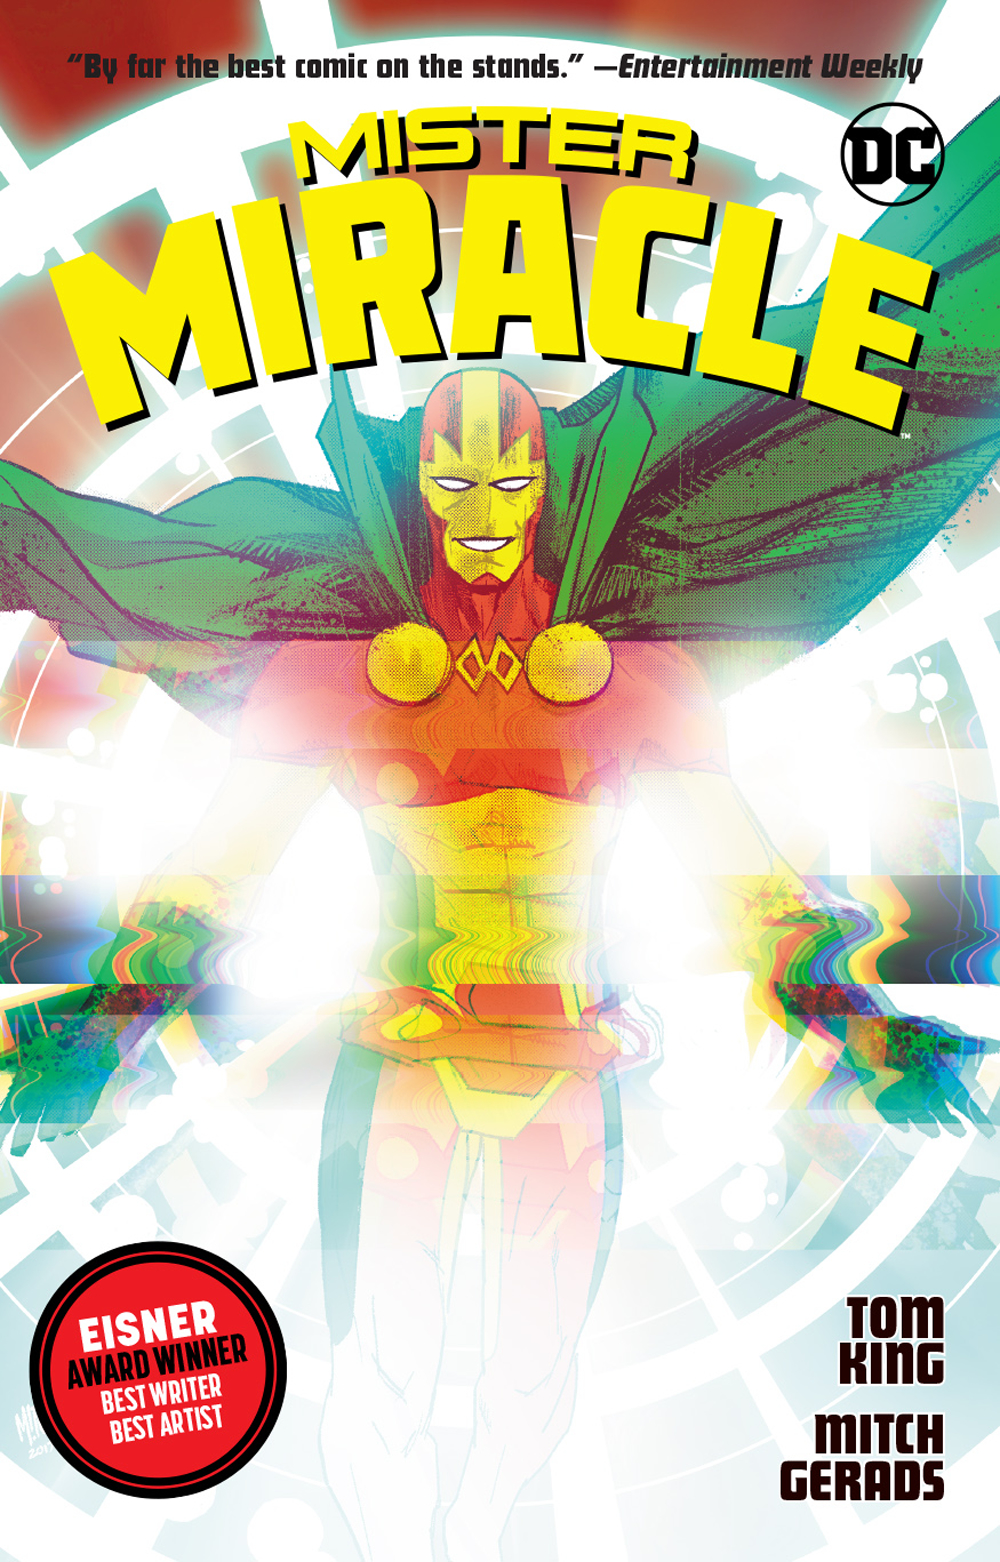 Mister Miracle  by Tom King and Mitch Gerads is out 2/13/2019.